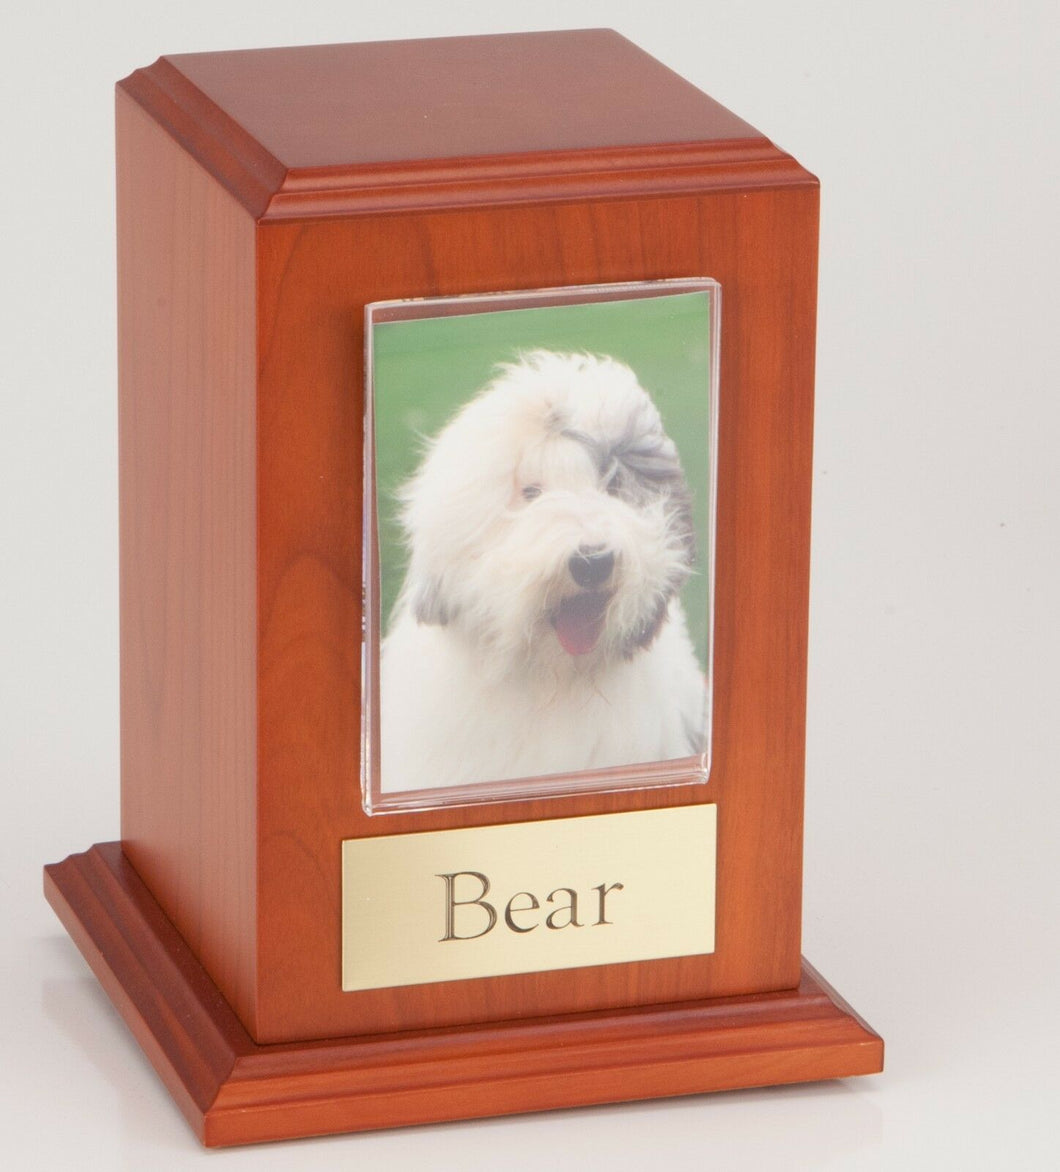 Small 35 Cubic Ins Cherry Pet Tower Photo Urn for Ashes w/Engravable Nameplate